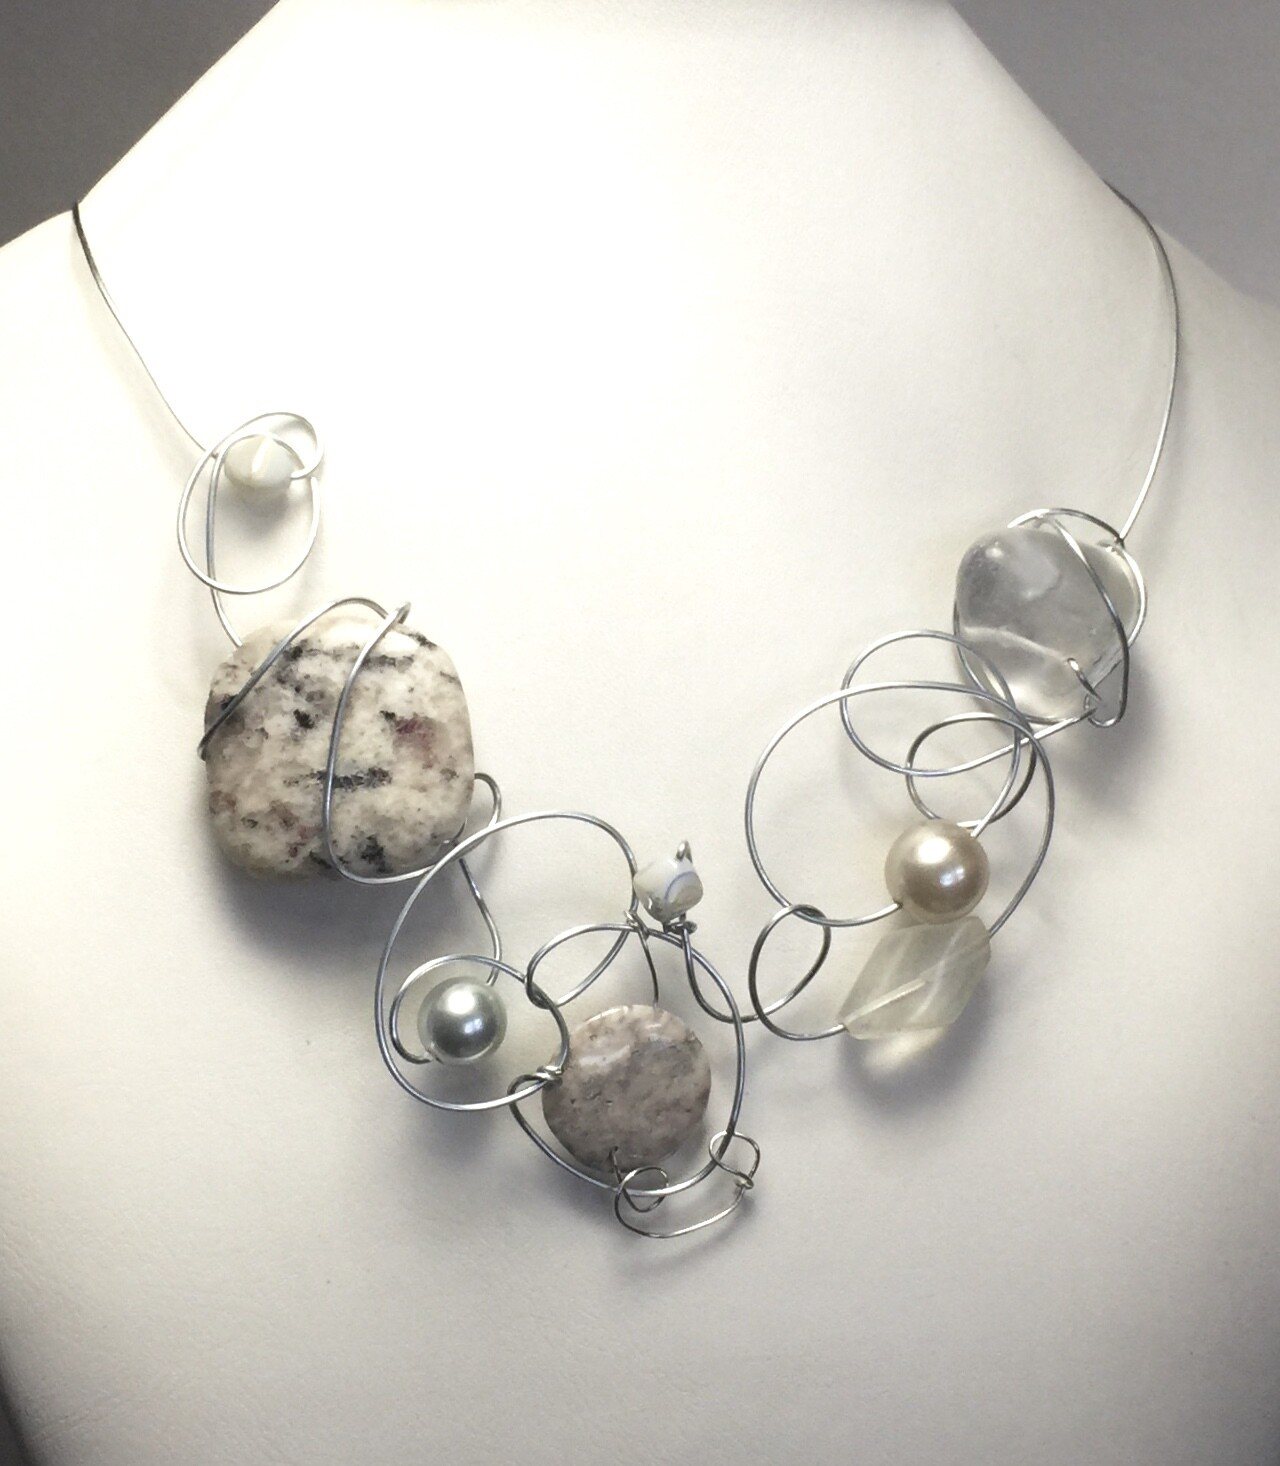 COLLIER DE PIERRES MIX ARGENT